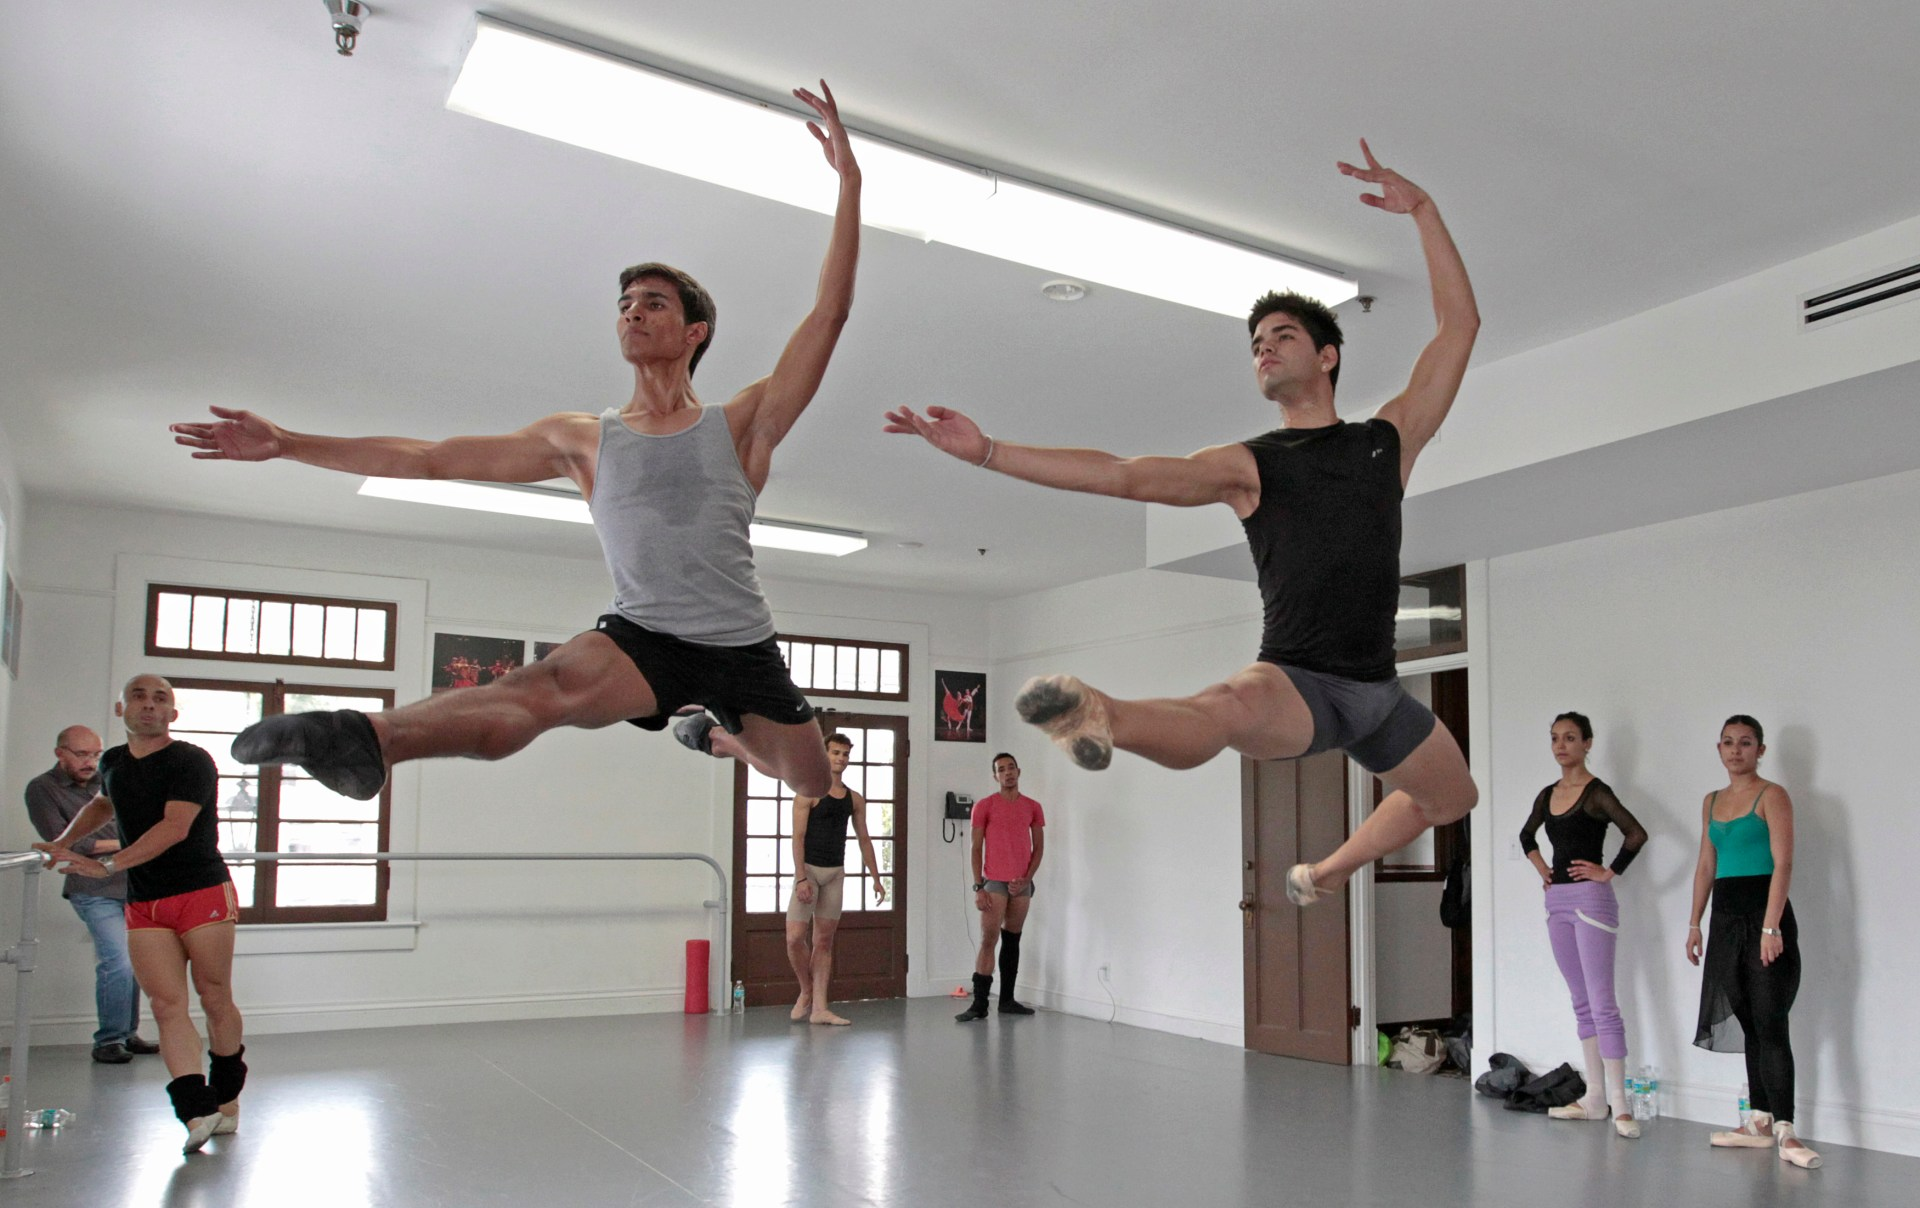 Dancers Josue Justiz (L) and Edward Gonzalez Morgado from the Cuban National Ballet, who defected last month, leap during their audition at the Miami Hispanic Ballet in Miami, Florida April 4, 2013. The Cuban national ballet, known for its adherence to a classical style of ballet and for producing many world-class dancers, regularly makes international tours. Over the years, many of its dancers have defected and joined other companies abroad. Others have been allowed to leave Cuba freely, including Carlos Acosta with the Royal Ballet in London and Jose Manuel Carreno, who retired in 2011 as a much revered principal dancer at the American Ballet Theatre in New York. REUTERS/Joe Skipper (UNITED STATES - Tags: POLITICS SOCIETY IMMIGRATION) - RTXY8T3